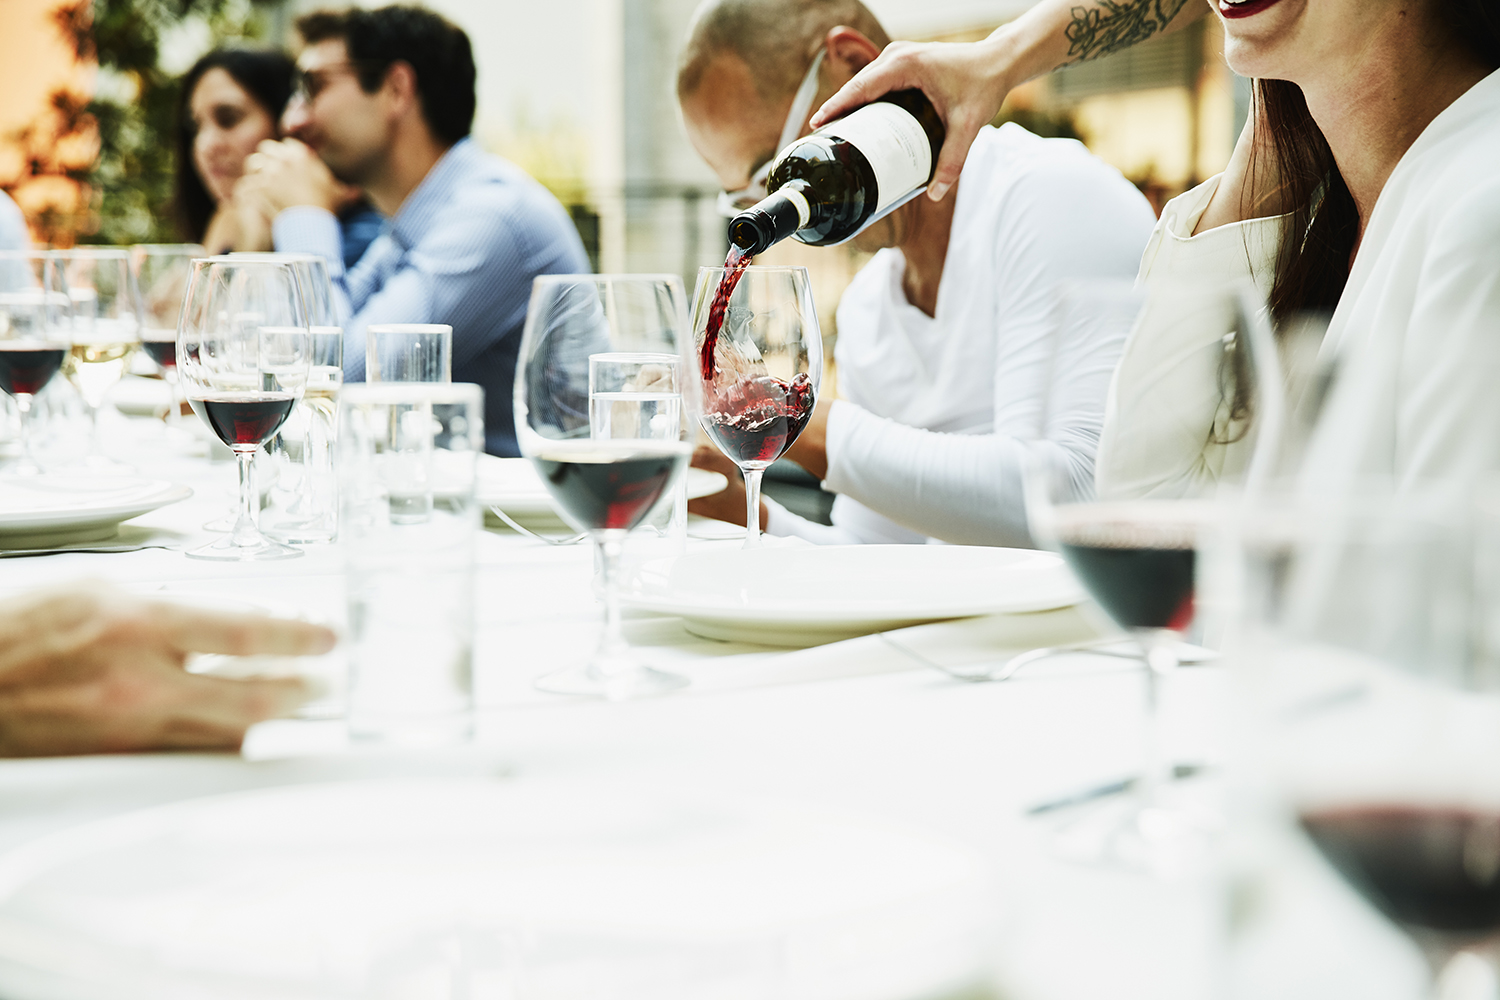 No Time to: Shop Around for the Best Wines